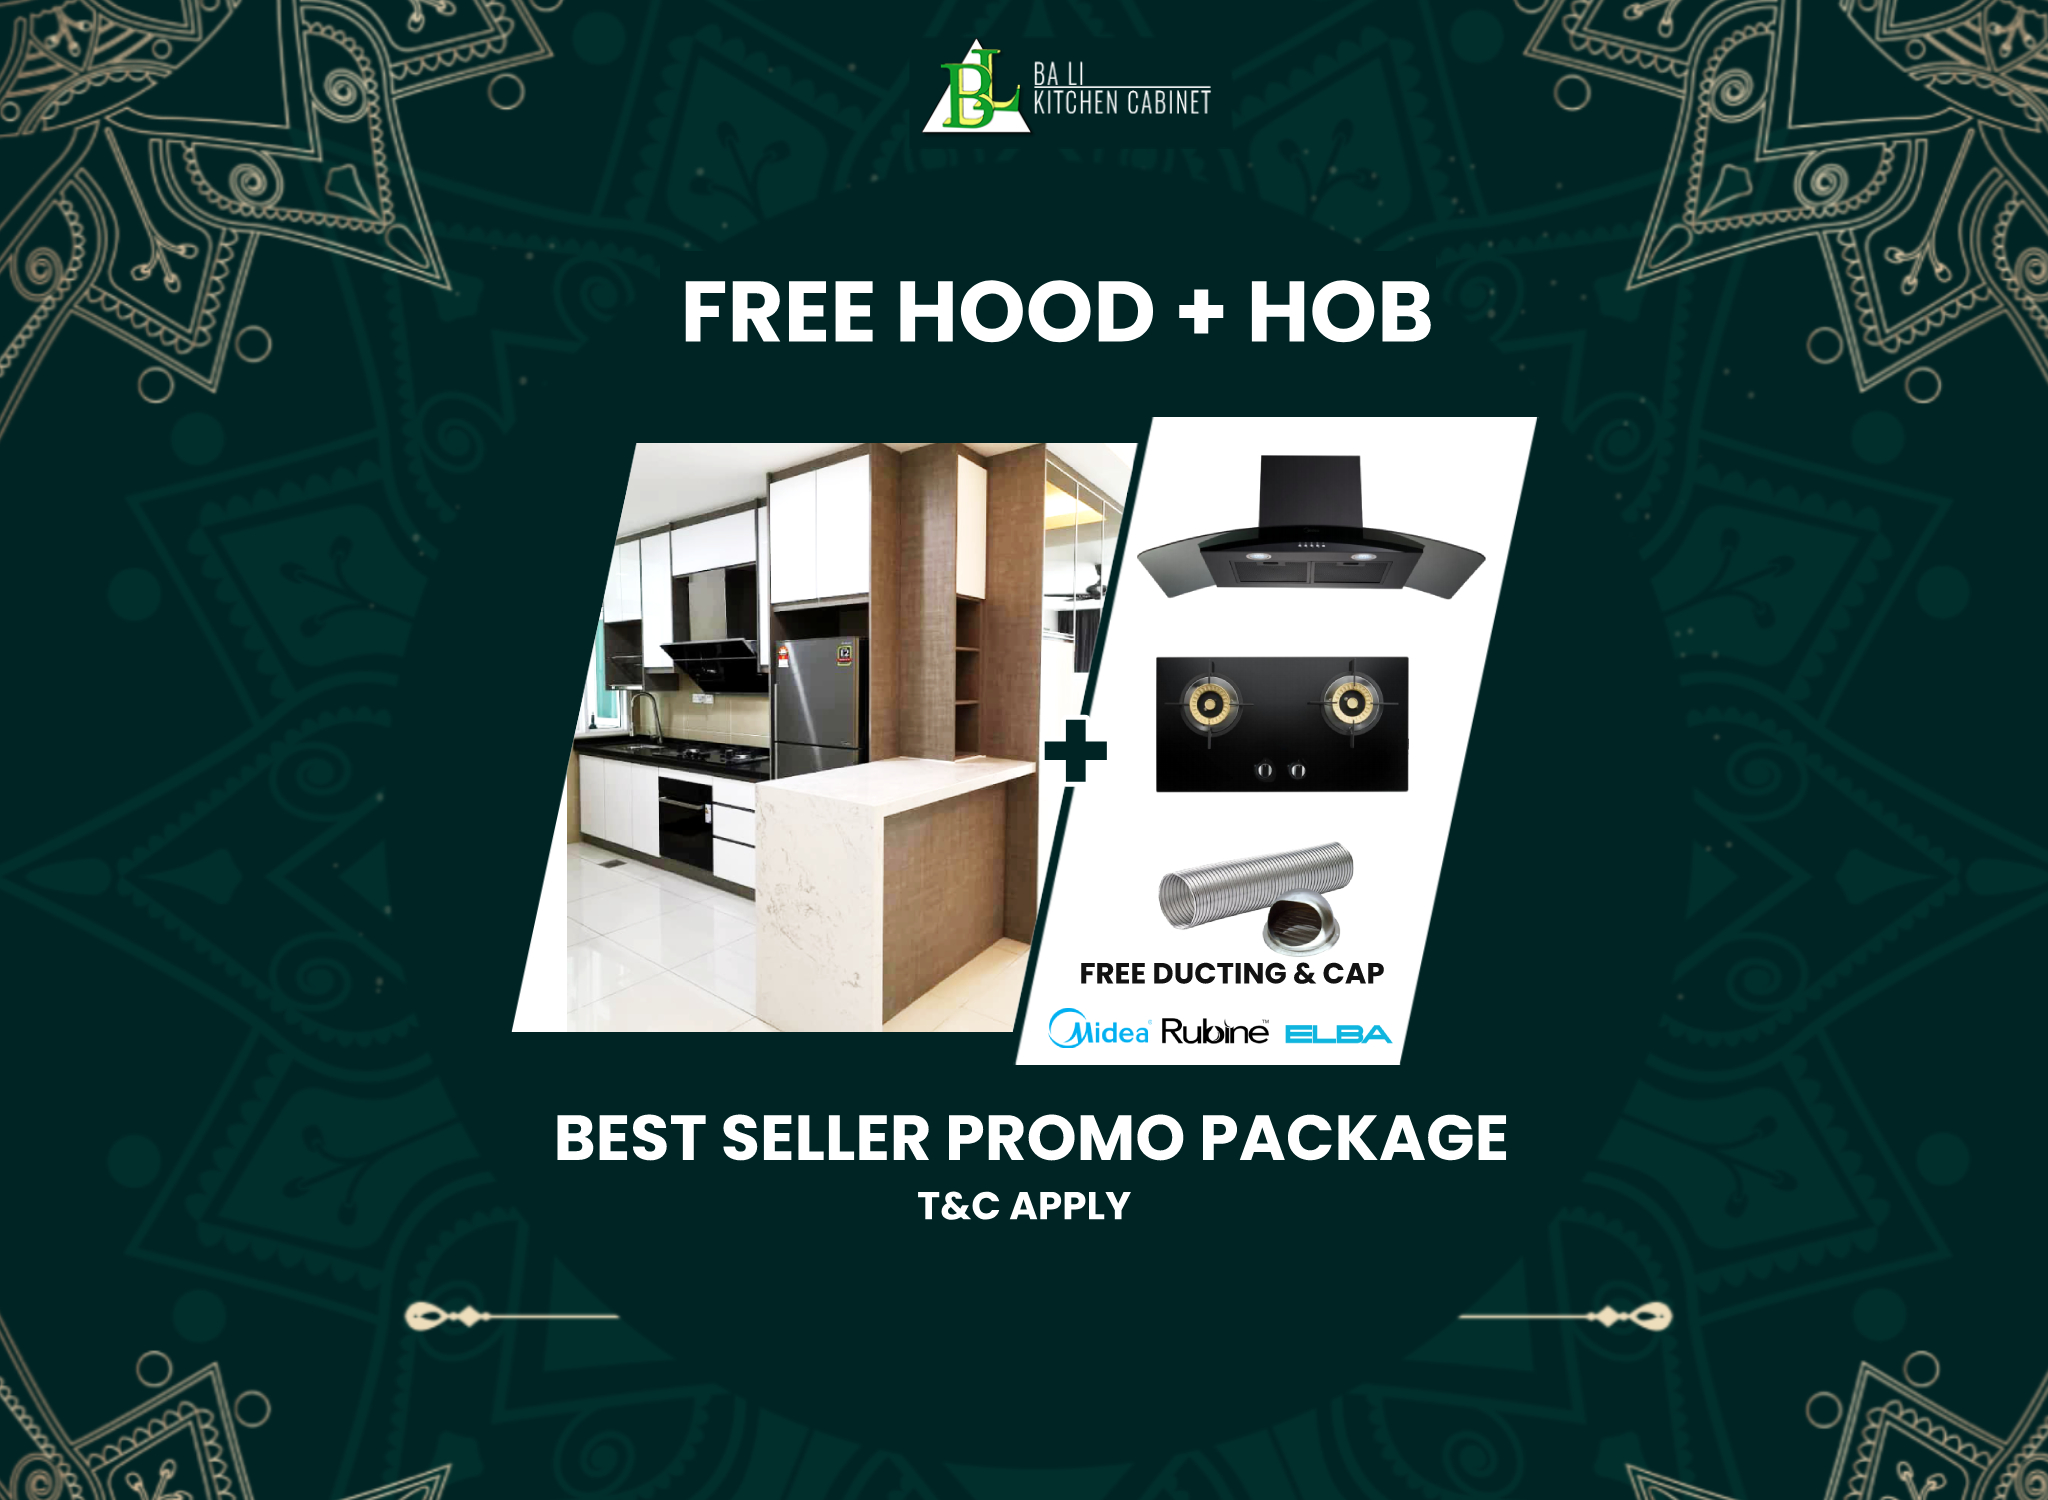 Ba Li Kitchen Cabinet Free Hood & Hob October Promo